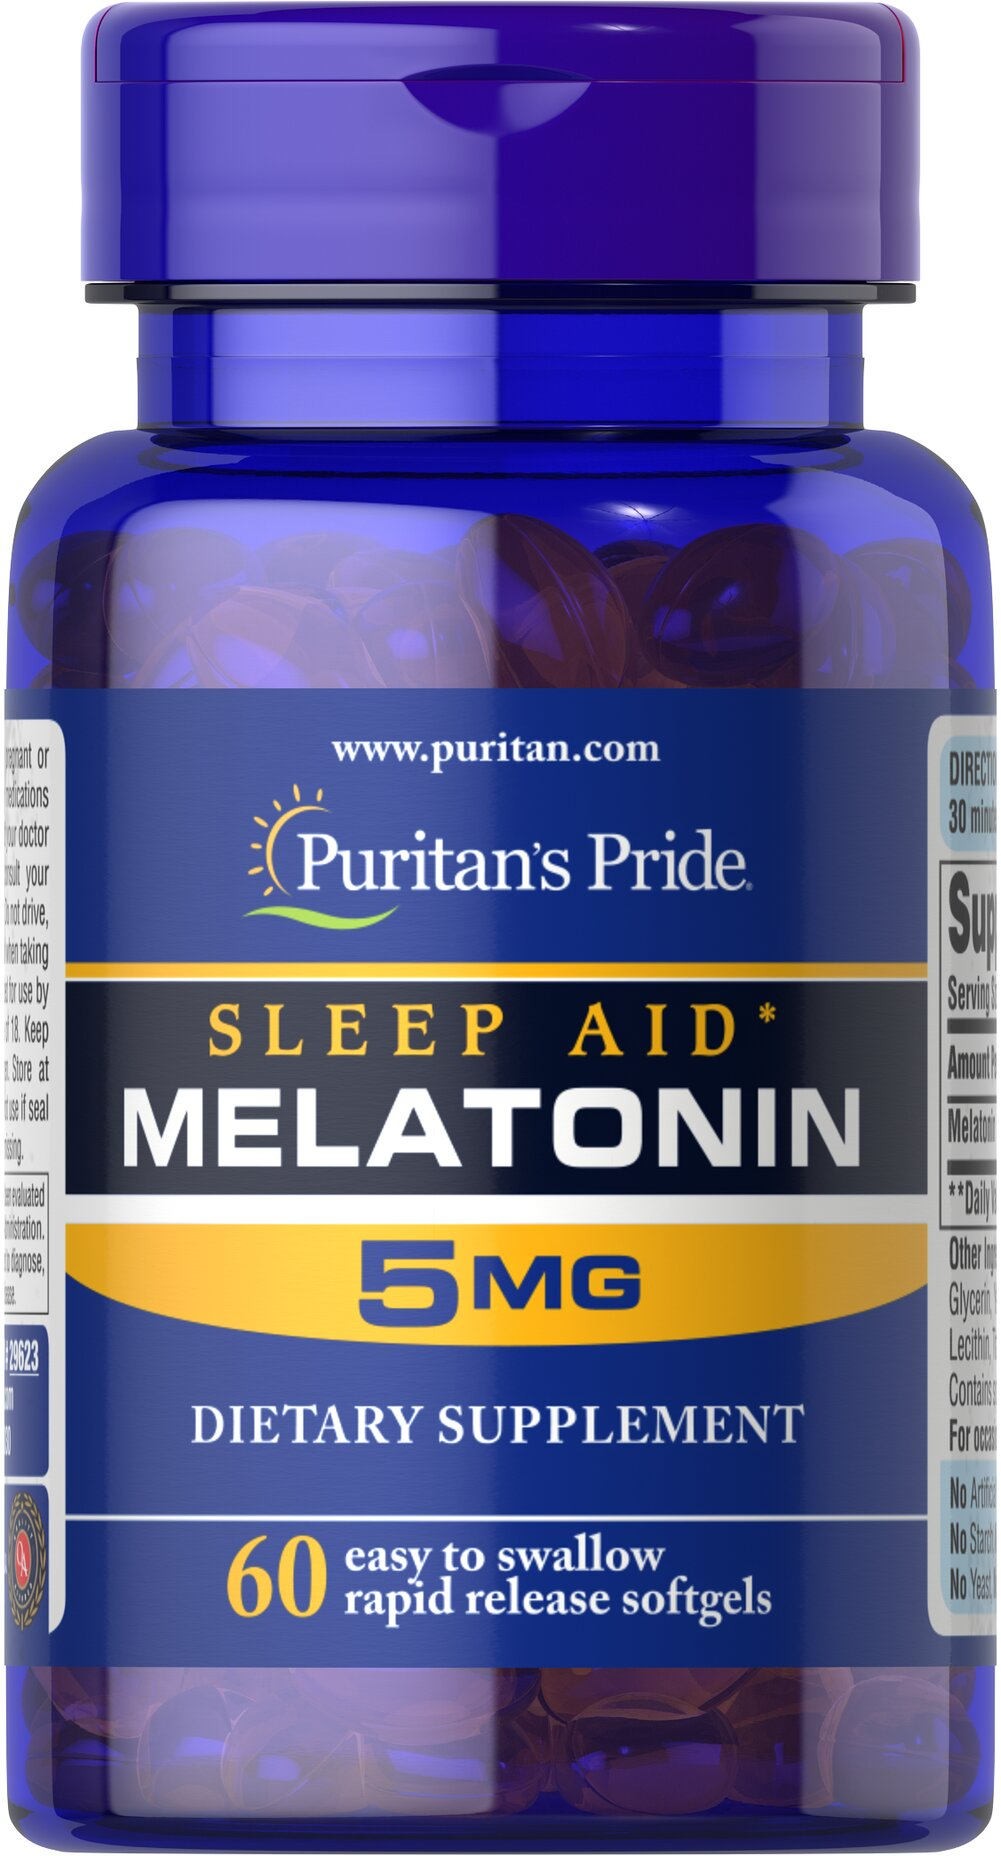 Extra Strength Melatonin 5 mg <ul><li>Extra Strength Melatonin is excellent for those experiencing jet lag or occasional sleeplessness.**</li><li>Melatonin helps maintain nighttime blood pressure levels already within a normal range, which may contribute to restful sleep.** </li><li>Convenient Rapid Release Softgel</li><li>Melatonin helps you fall asleep quickly and stay asleep longer**</li></ul> 60 Softgels 5 mg $7.99